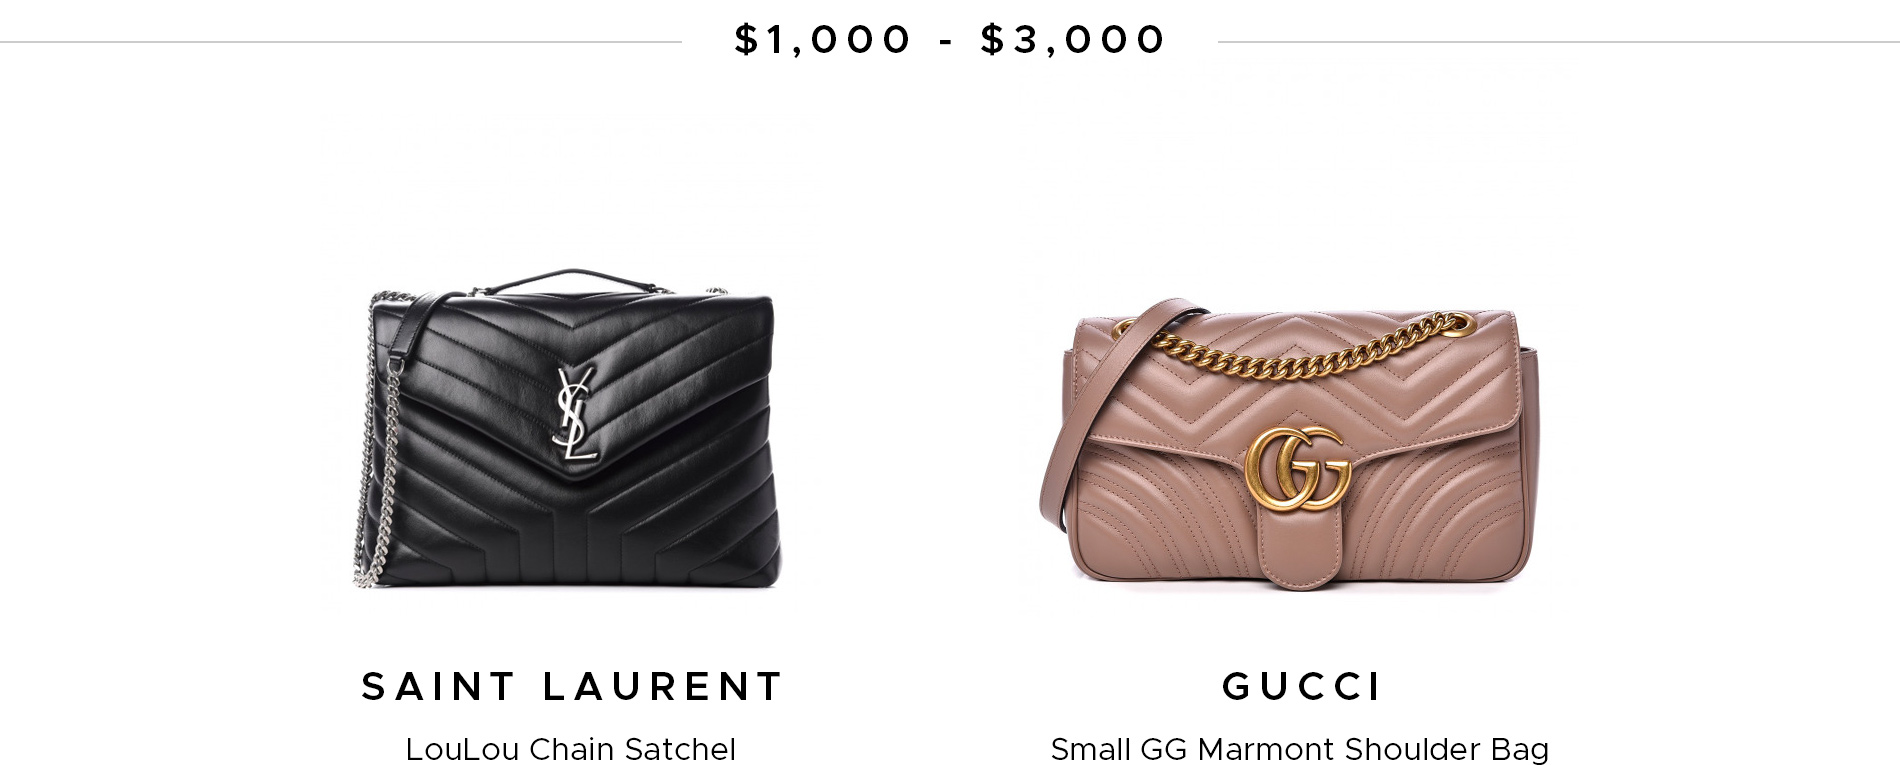 $1,000 - $3,000 Saint Laurent LouLou and Gucci Small GG